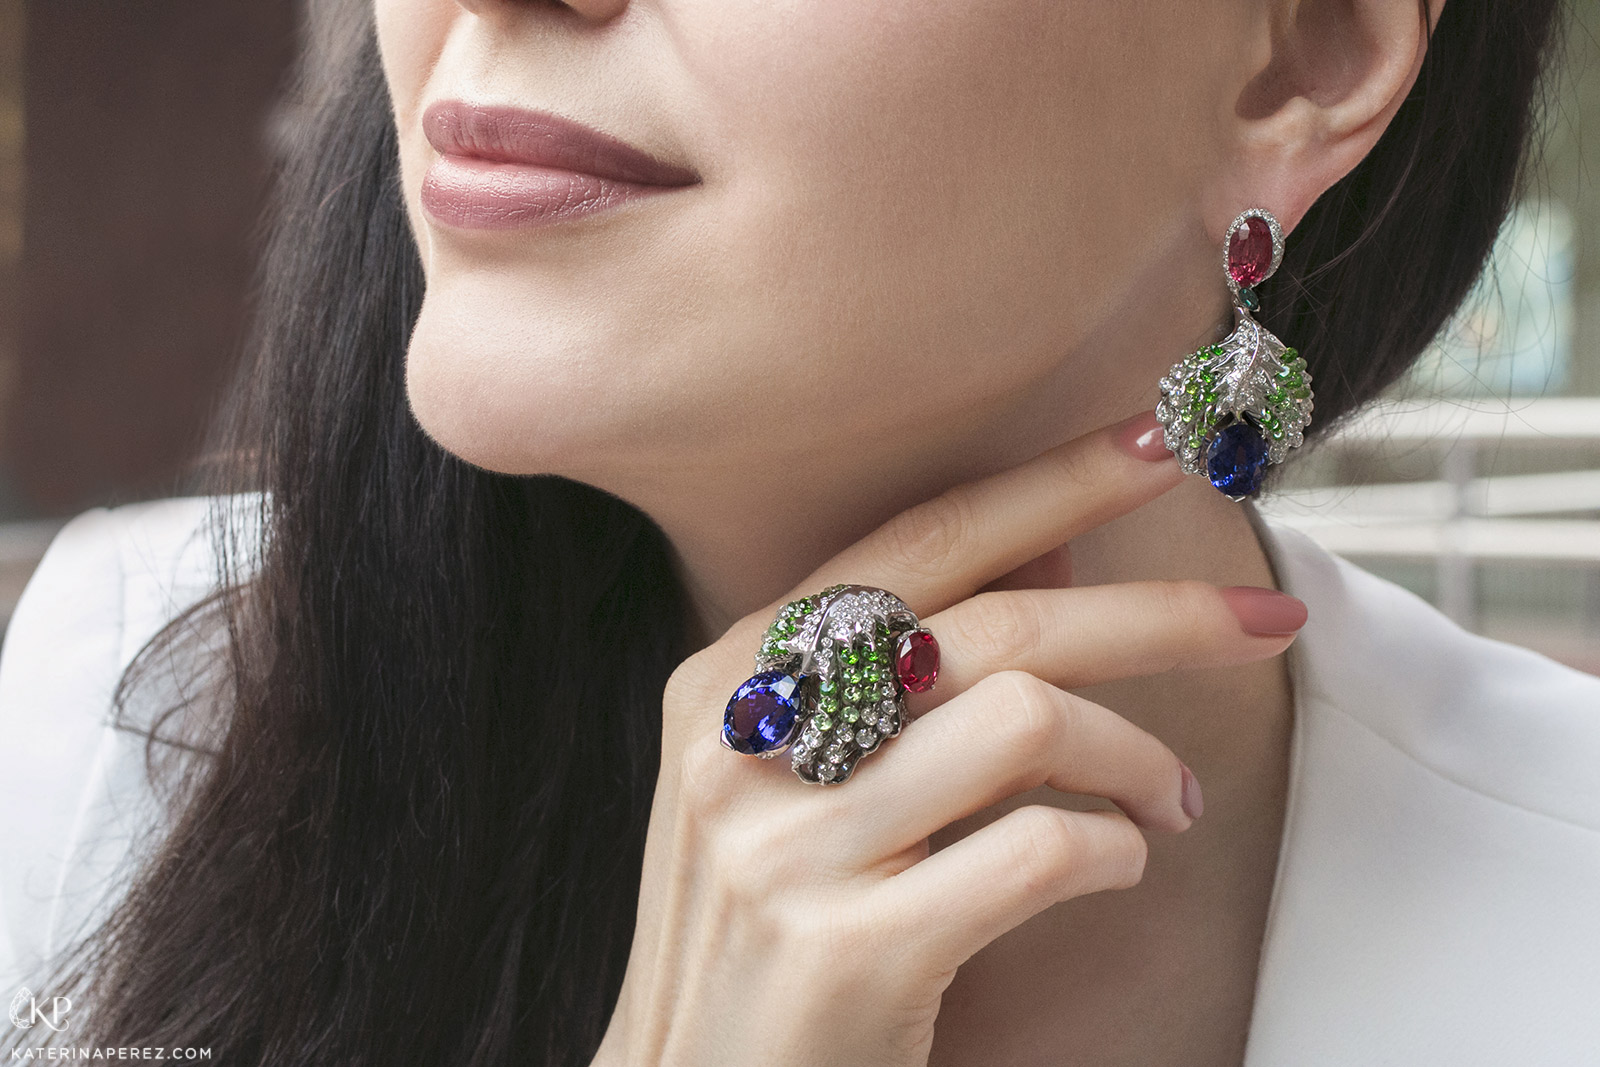 Moiseikin 'Firebird' ring and earrings with Waltzing Brilliance™ tanzanite, spinel, demantoid garnets, sapphires and diamonds